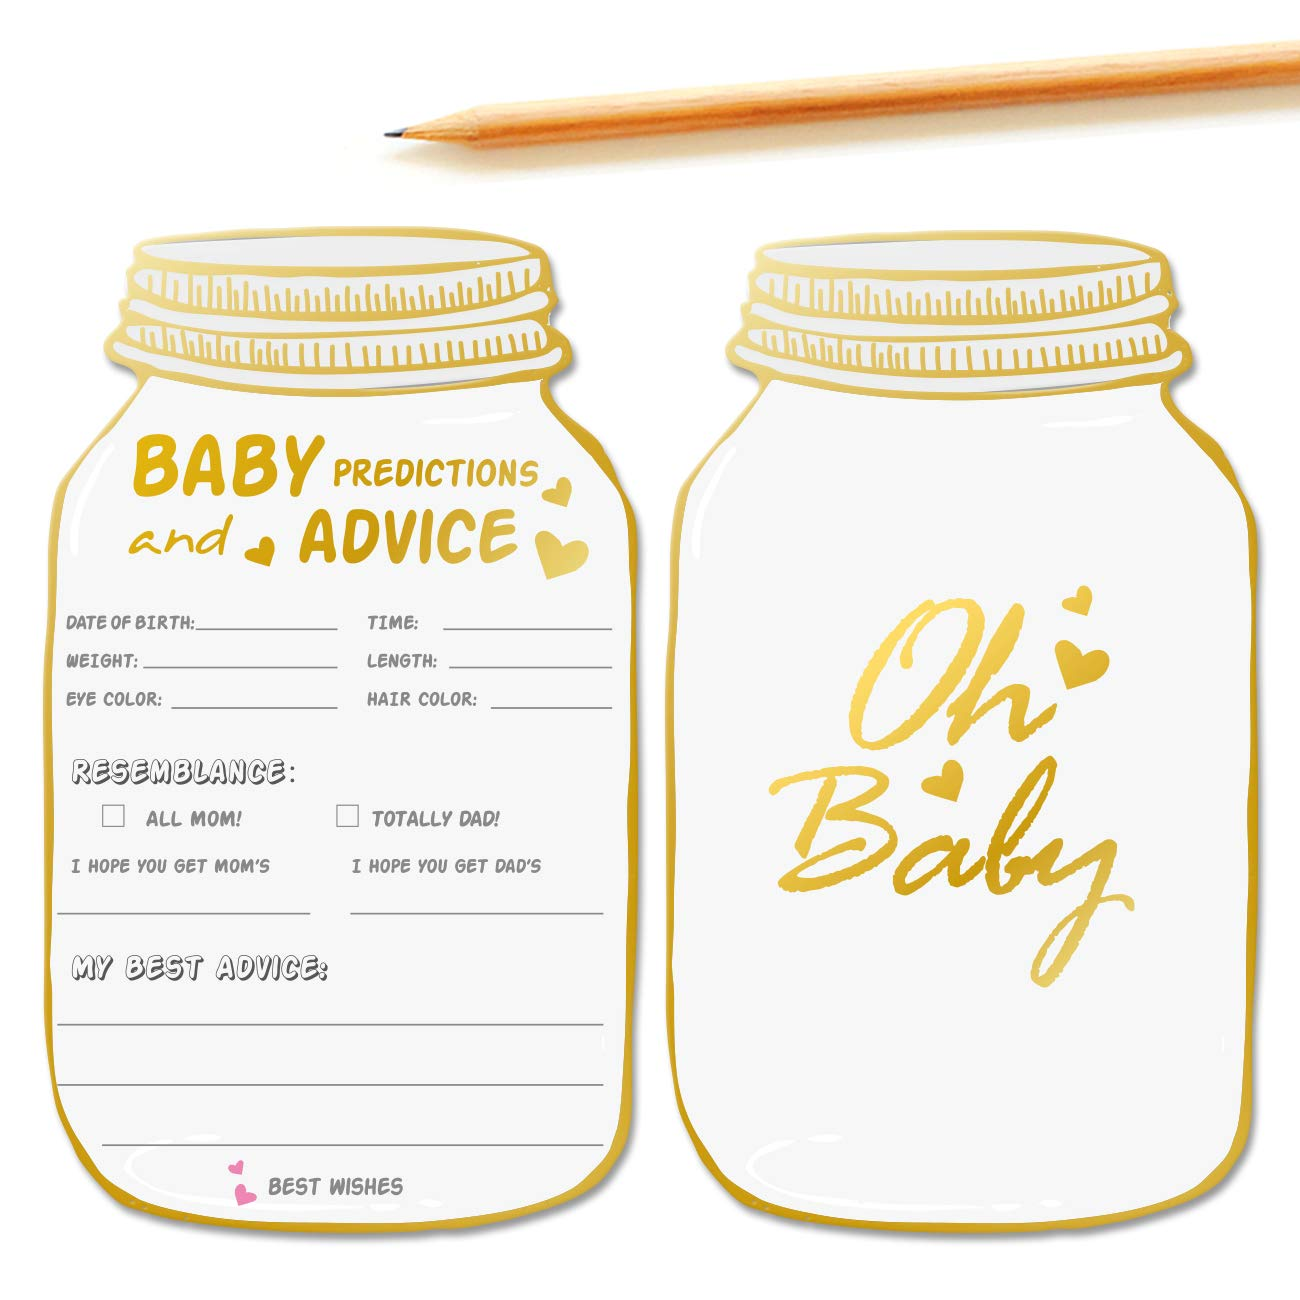 50 Mason Jar Advice and Prediction Cards for Baby Shower Game, Baby Shower Prediction and Advice Cards,Gender Neutral Boy or Girl,Fun Baby Shower Games Favors,New Parent Message Advice Book - 4x7inch